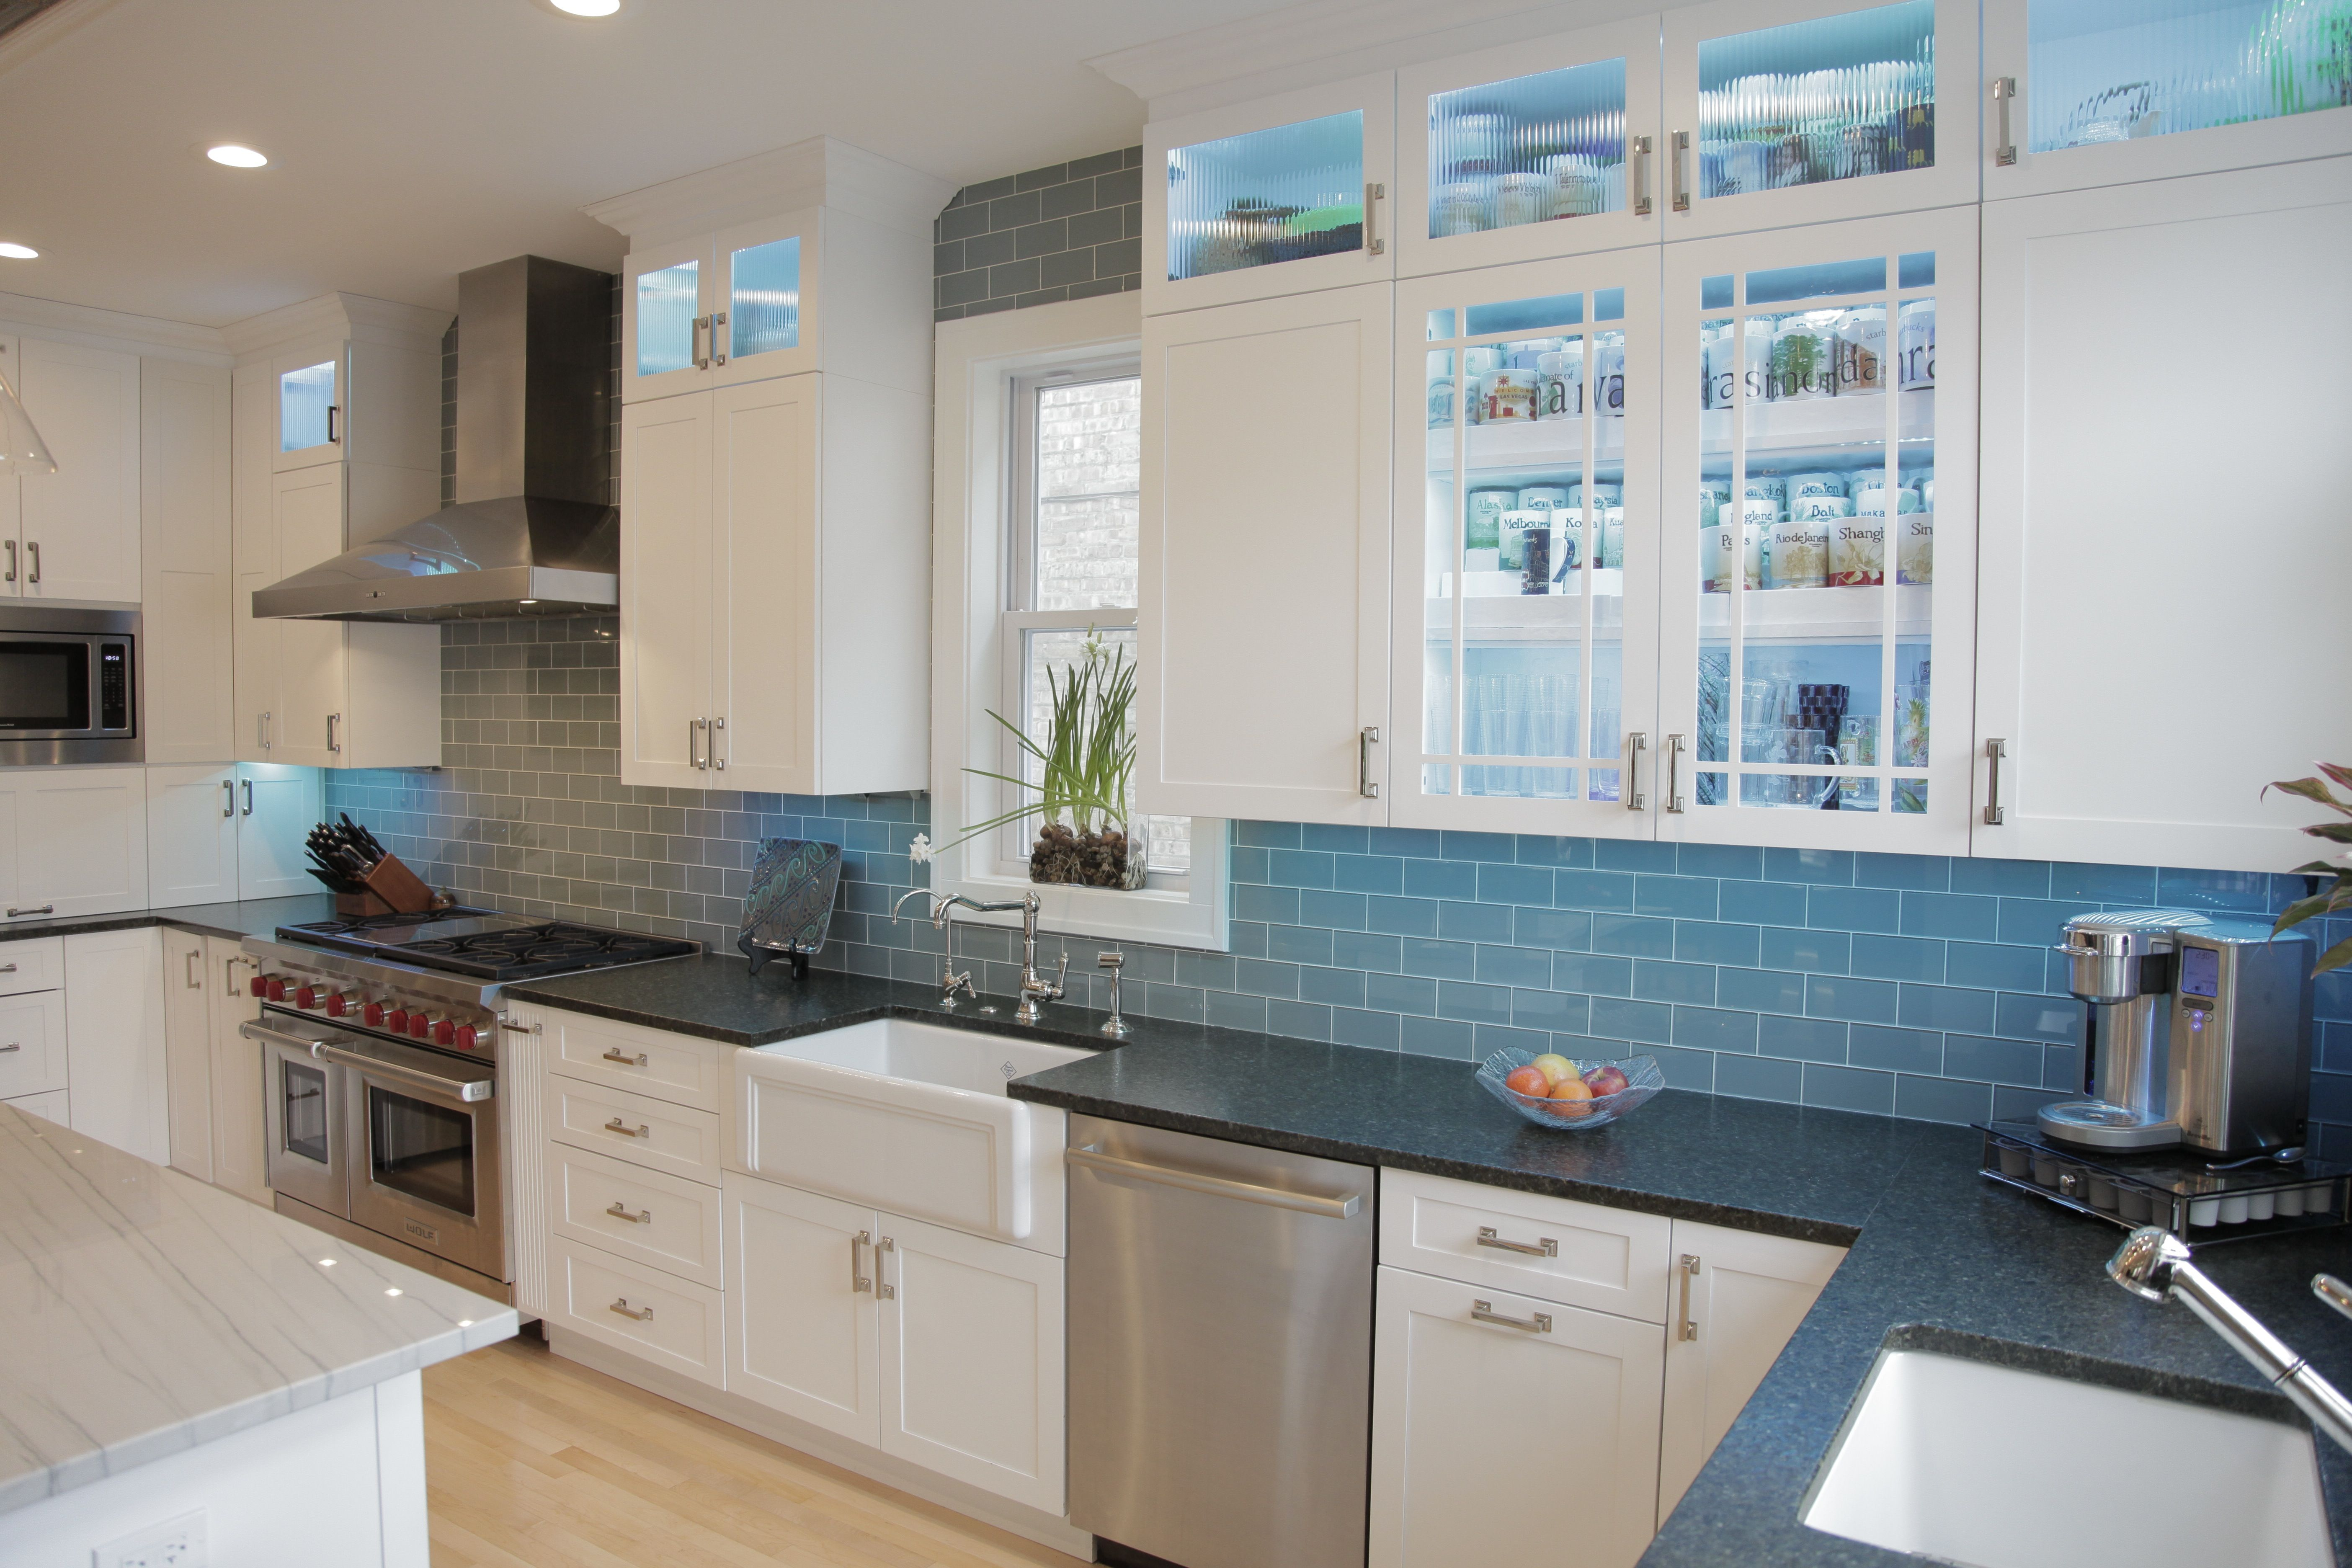 Kitchen Remodel In Chicago Il By Budget Right Kitchens In Cabinet